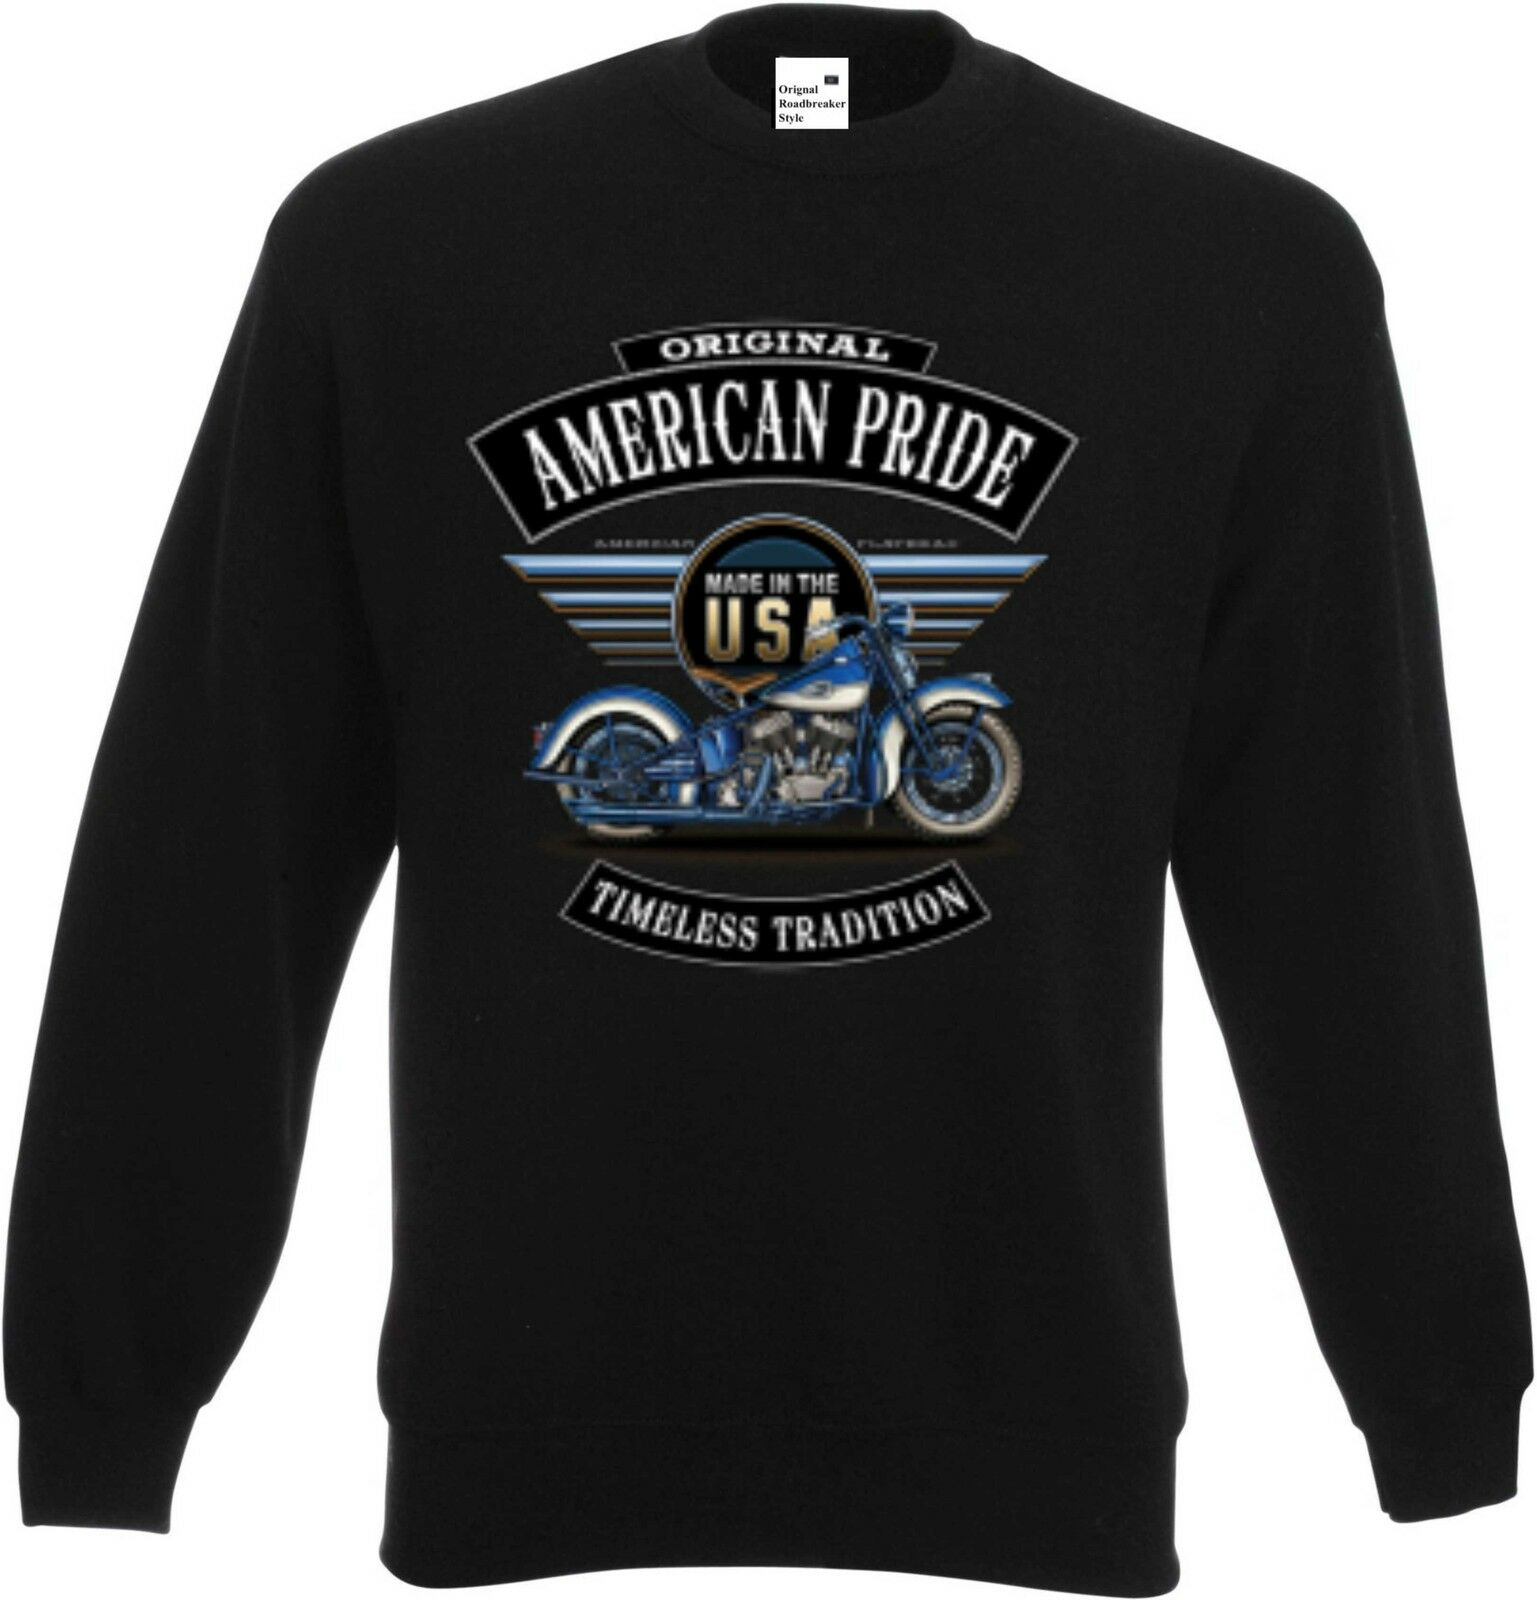 Sweatshirt black HD Biker Chopper-&Old Schoolmotiv Modell bluee Flatty